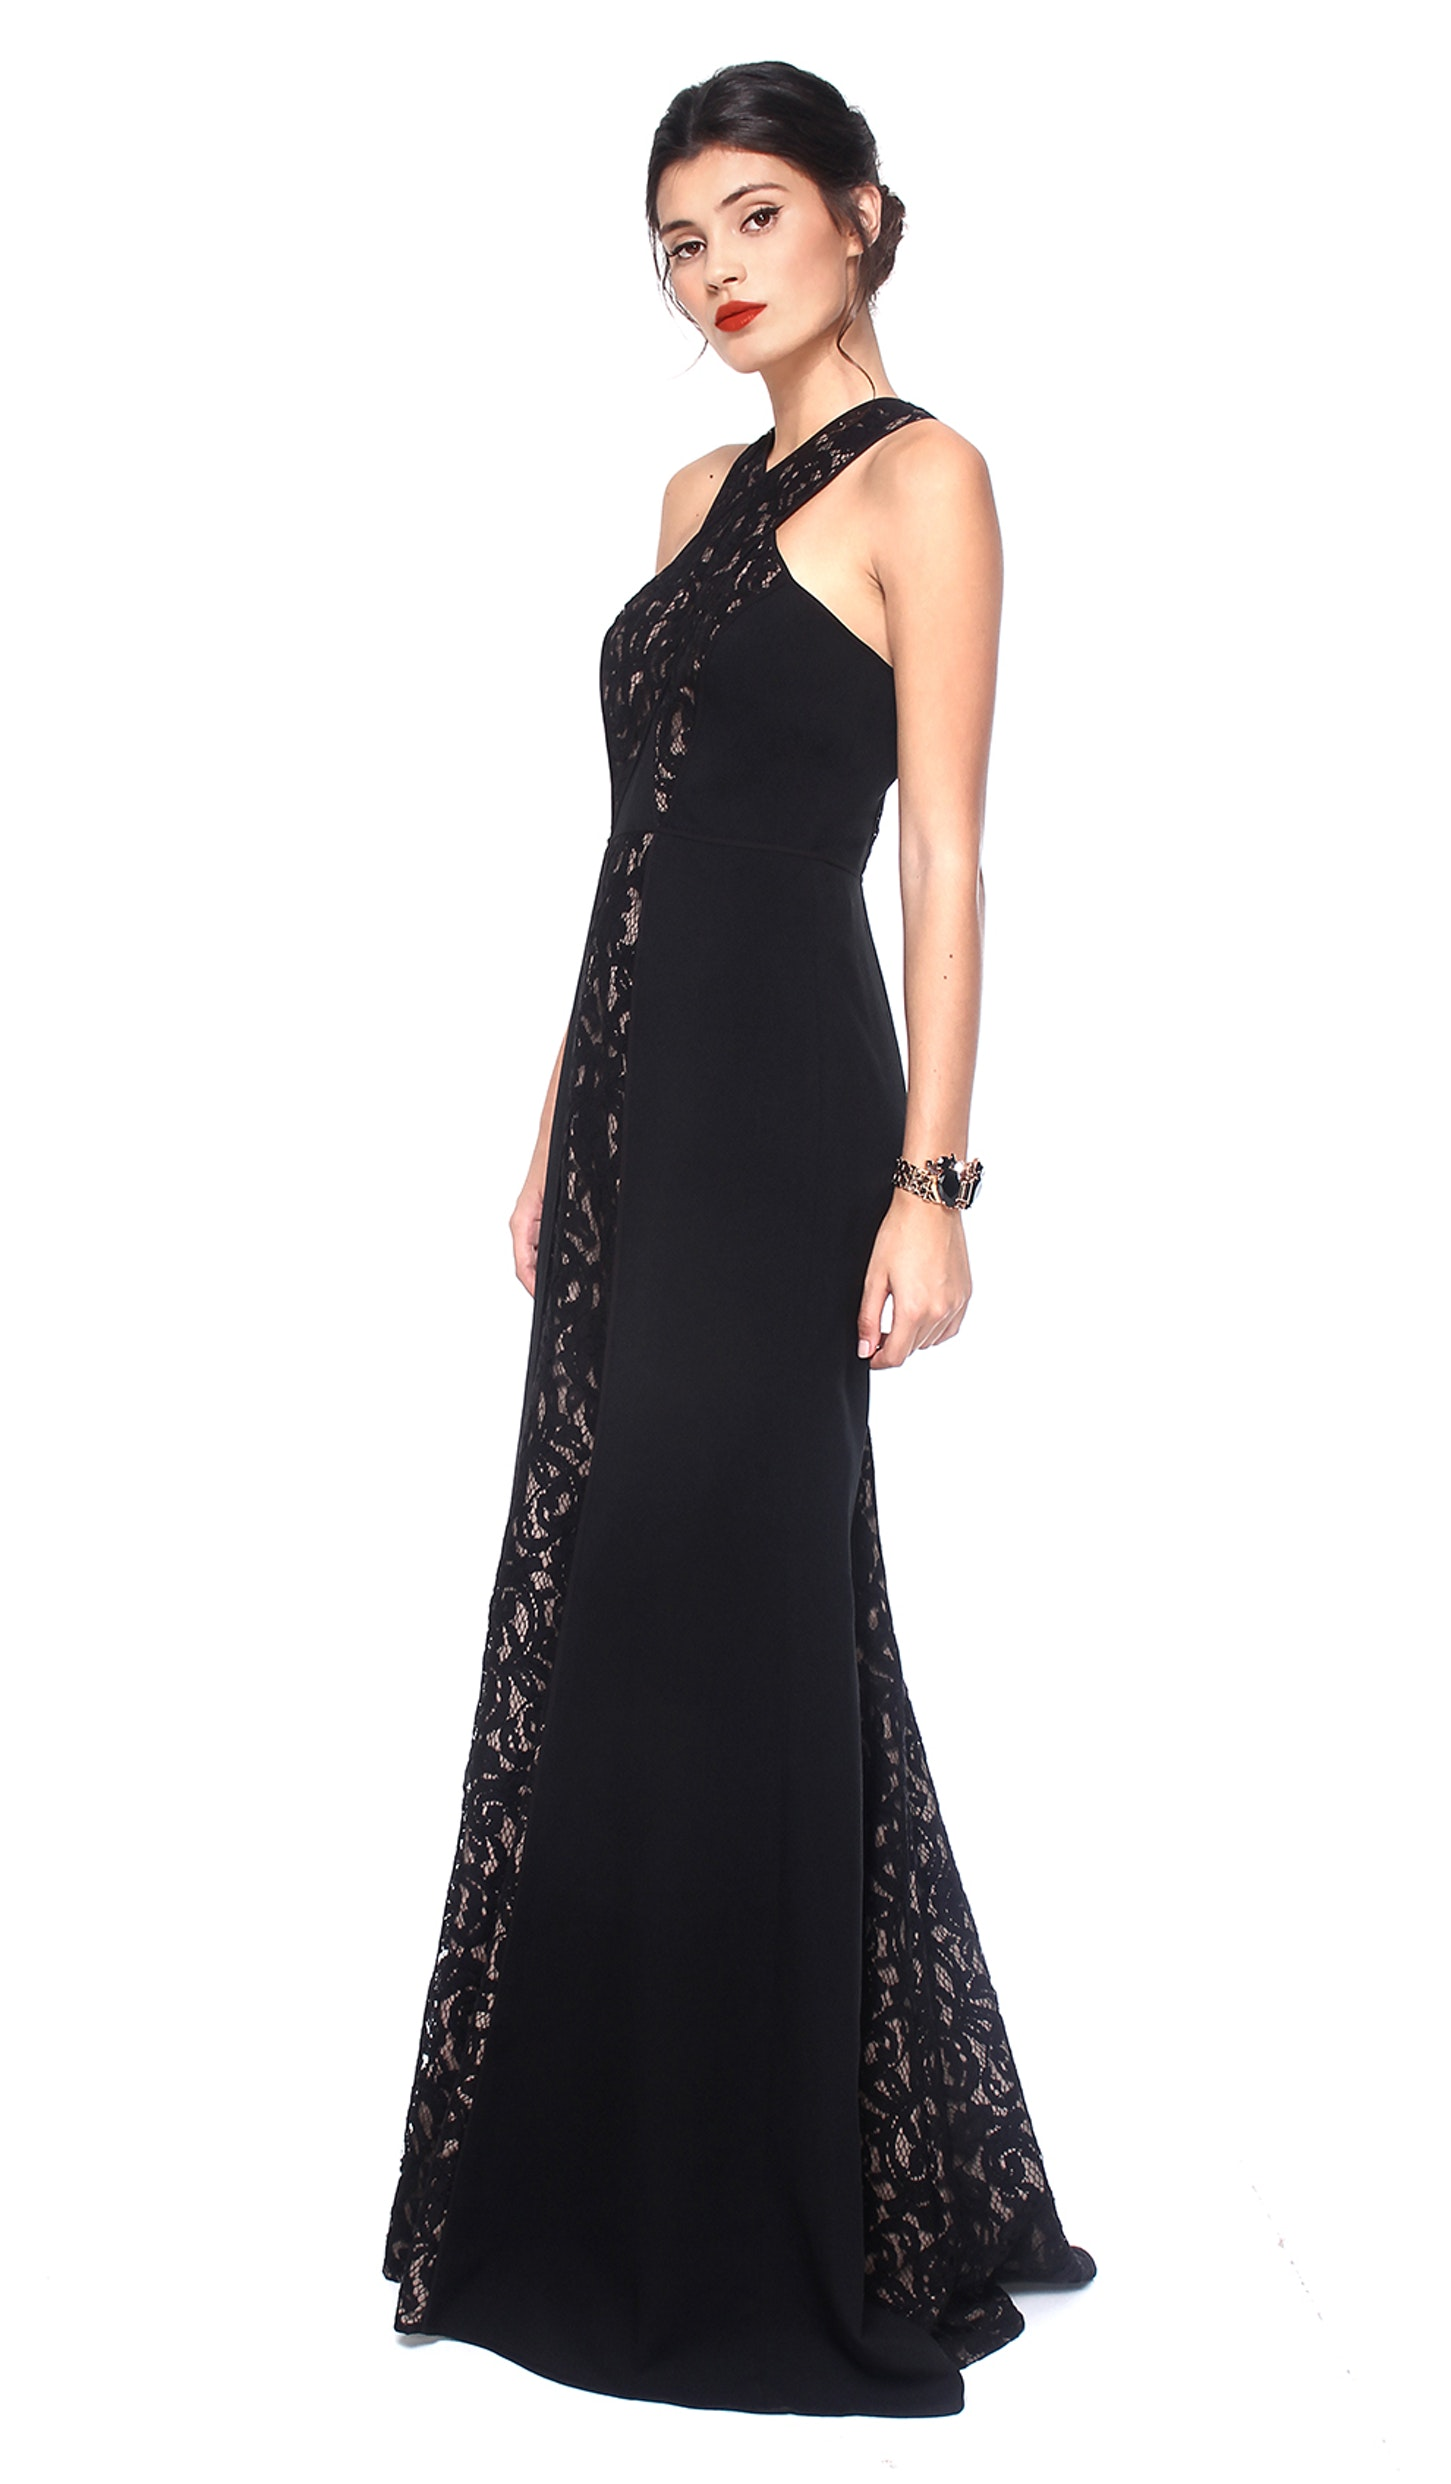 Black Lace Crossover-Neck Gown - BCBG MAX AZRIA — Chic by Choice Sale